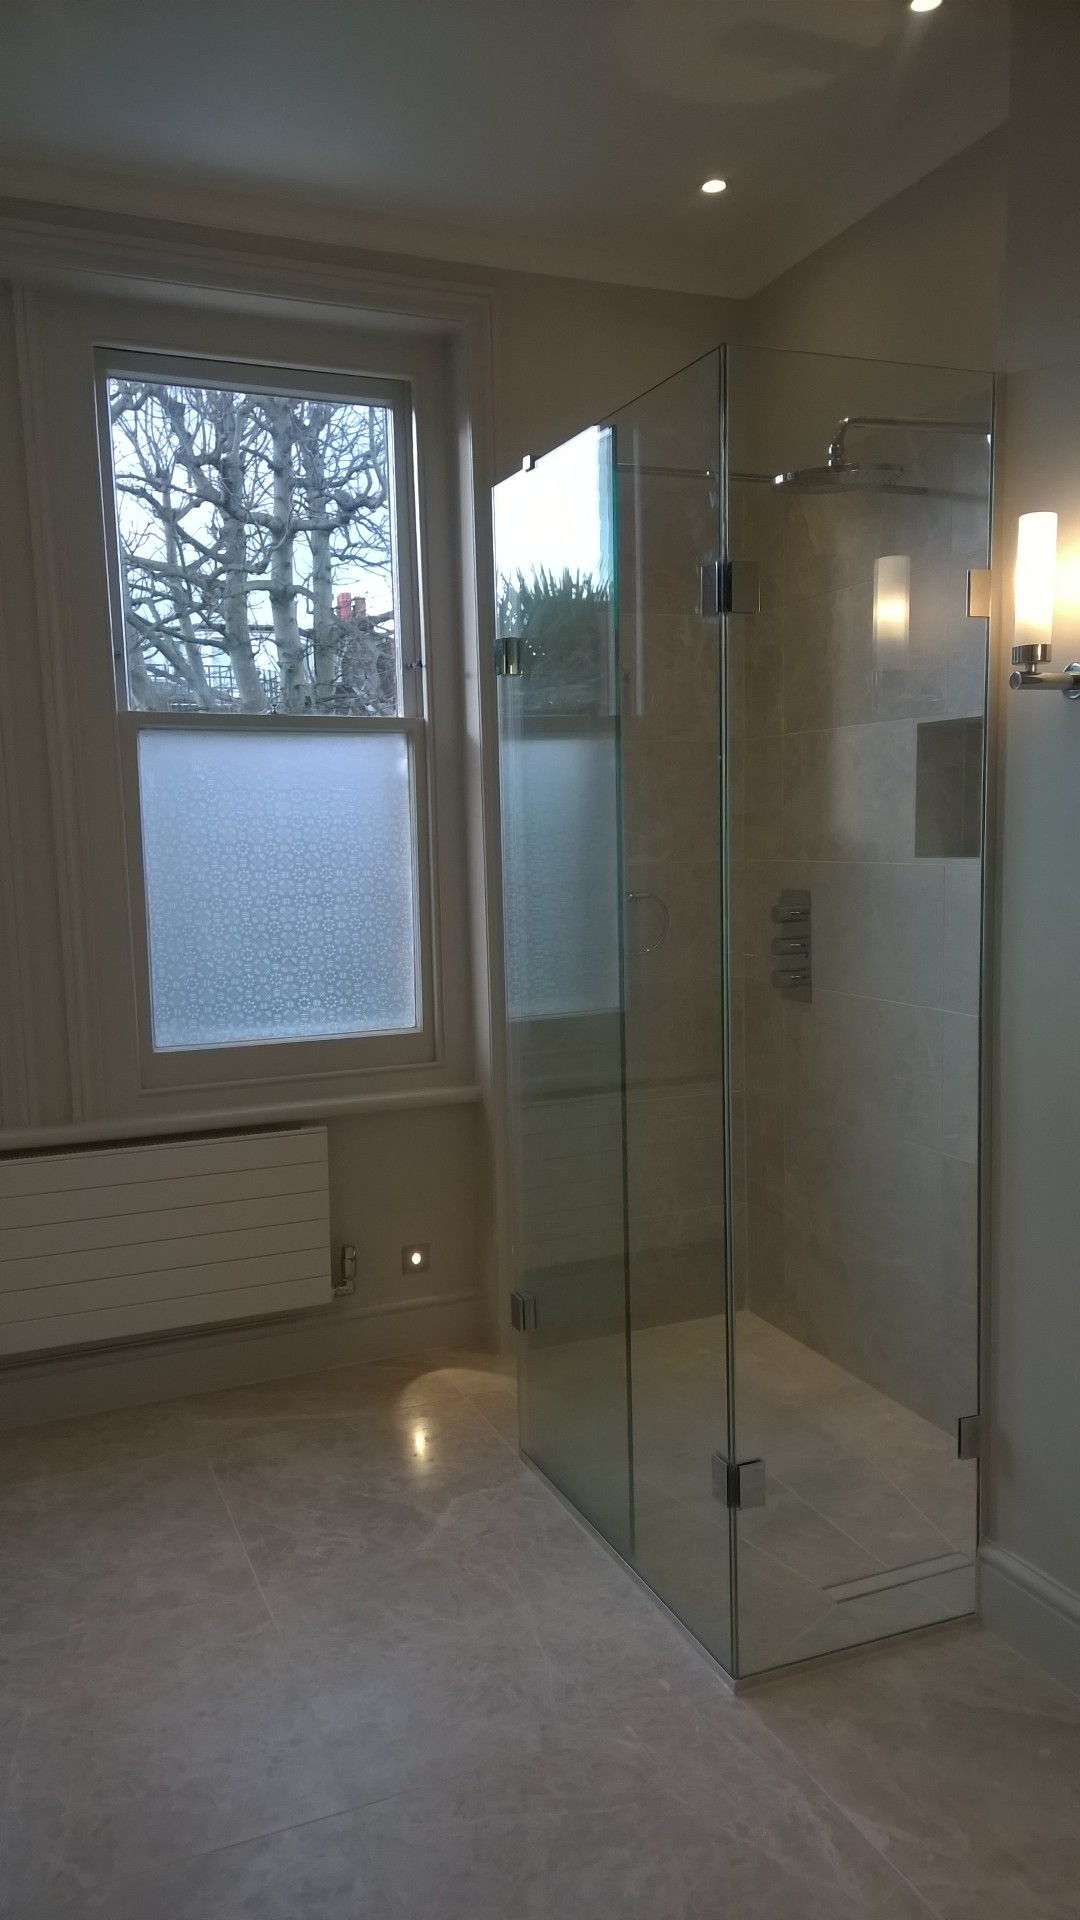 A wetroom shower area with shwoer screen and recessed shower valve